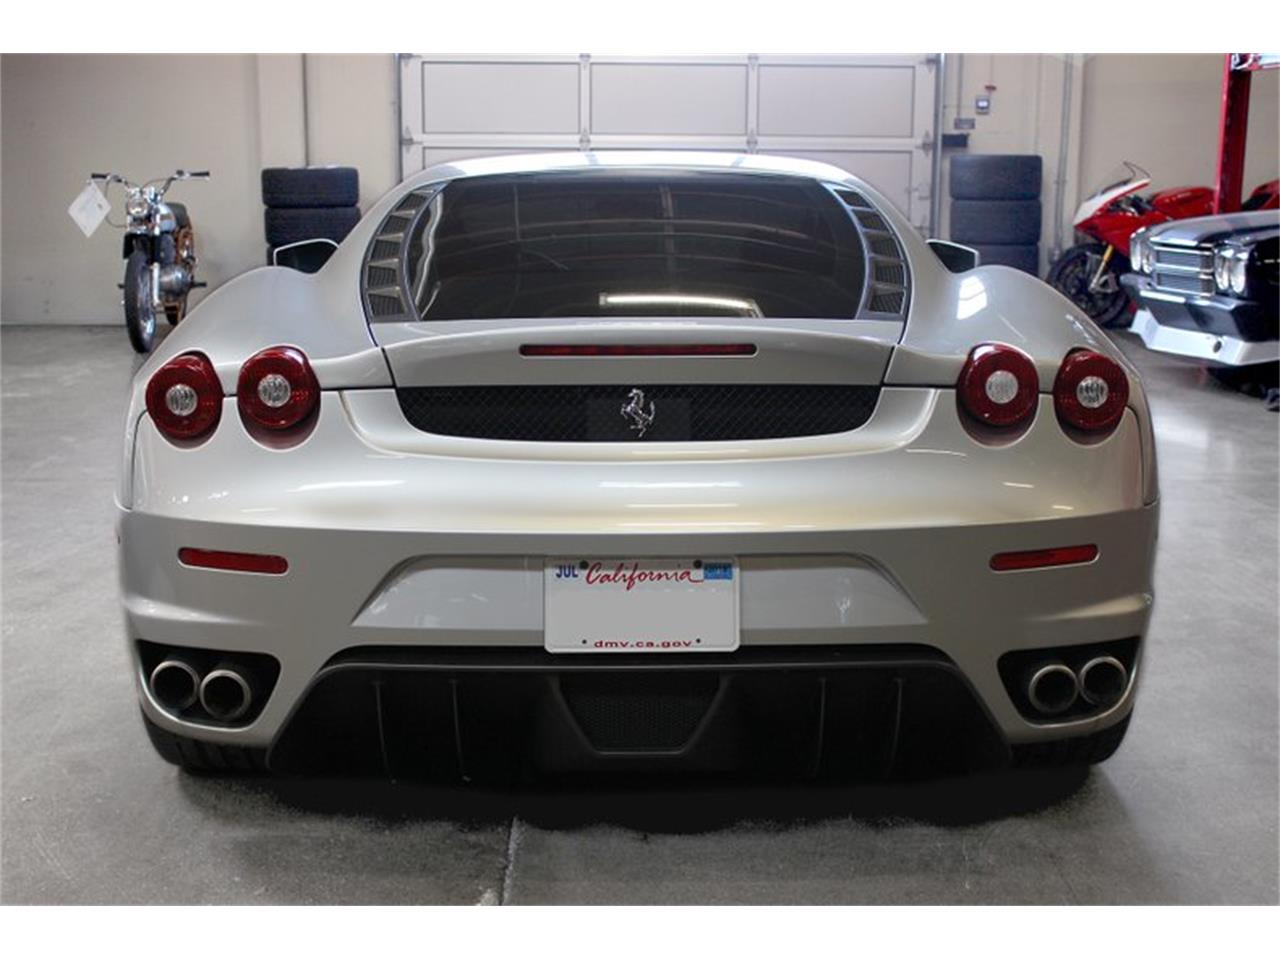 2005 Ferrari F430 for sale in San Carlos, CA – photo 6